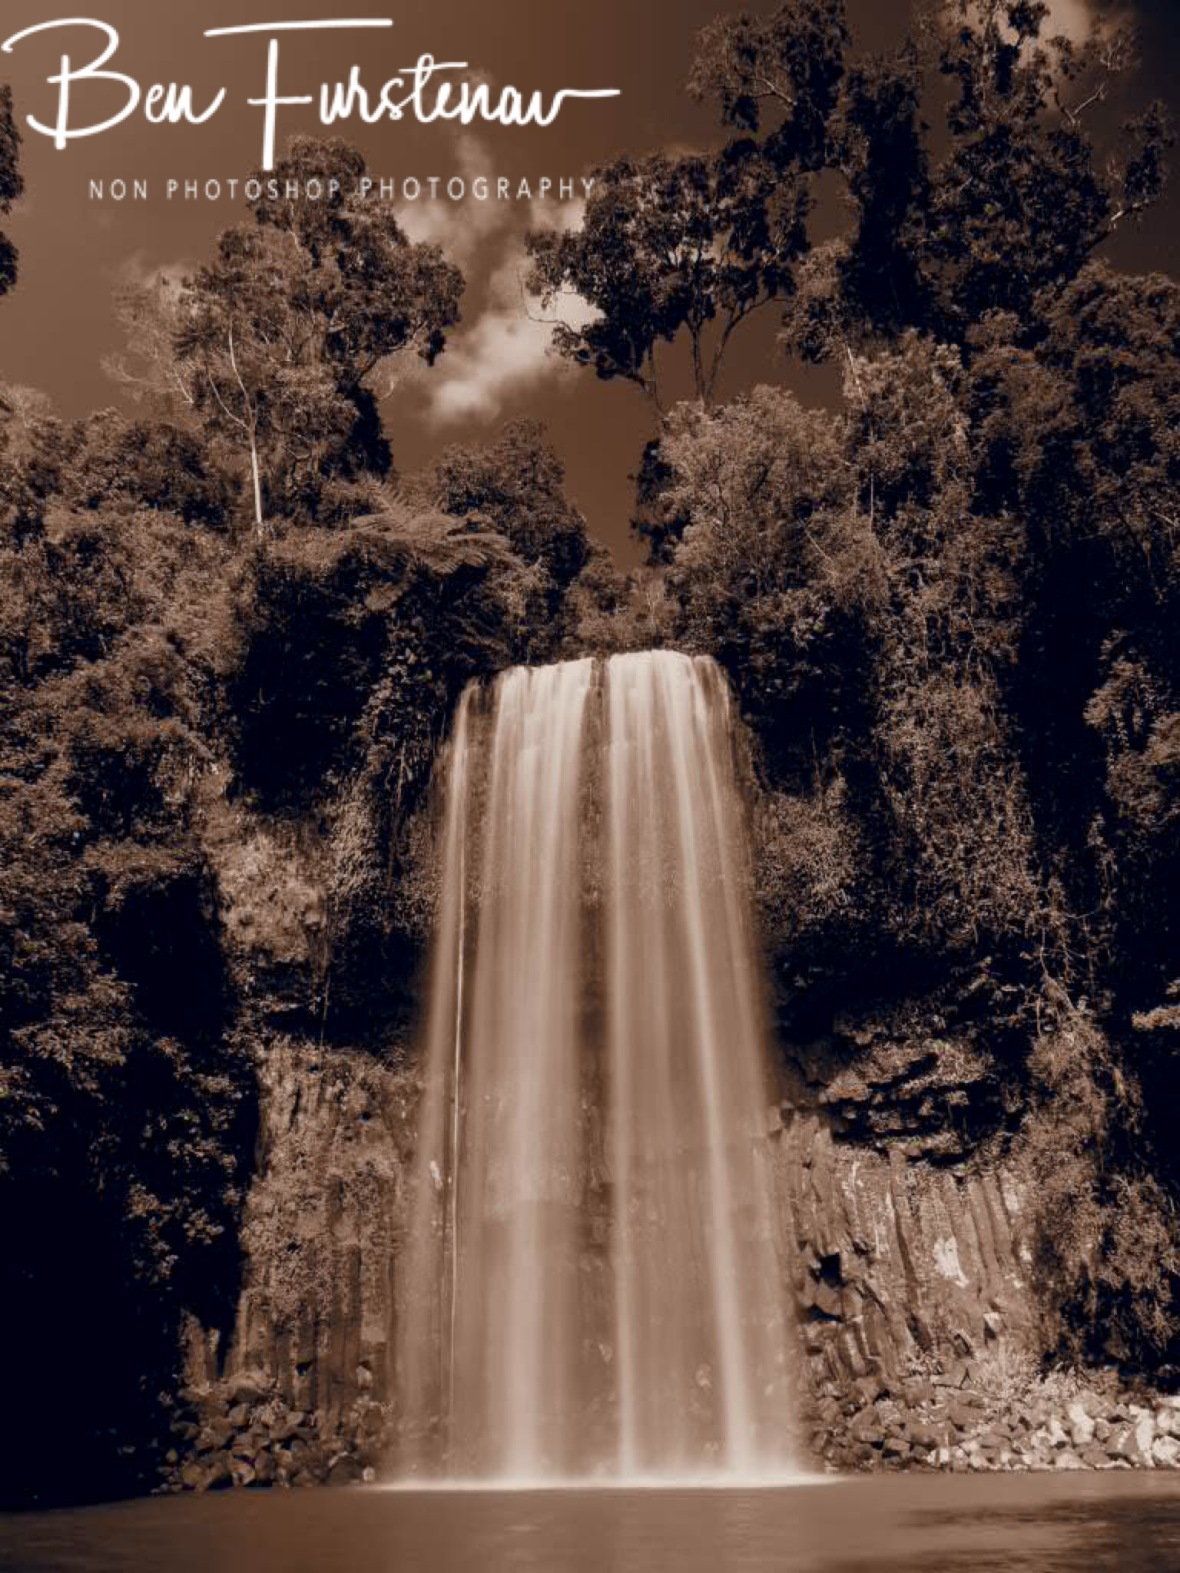 Millaa Millaa Falls in sepia, Atherton Tablelands, Far North Queensland, Australia